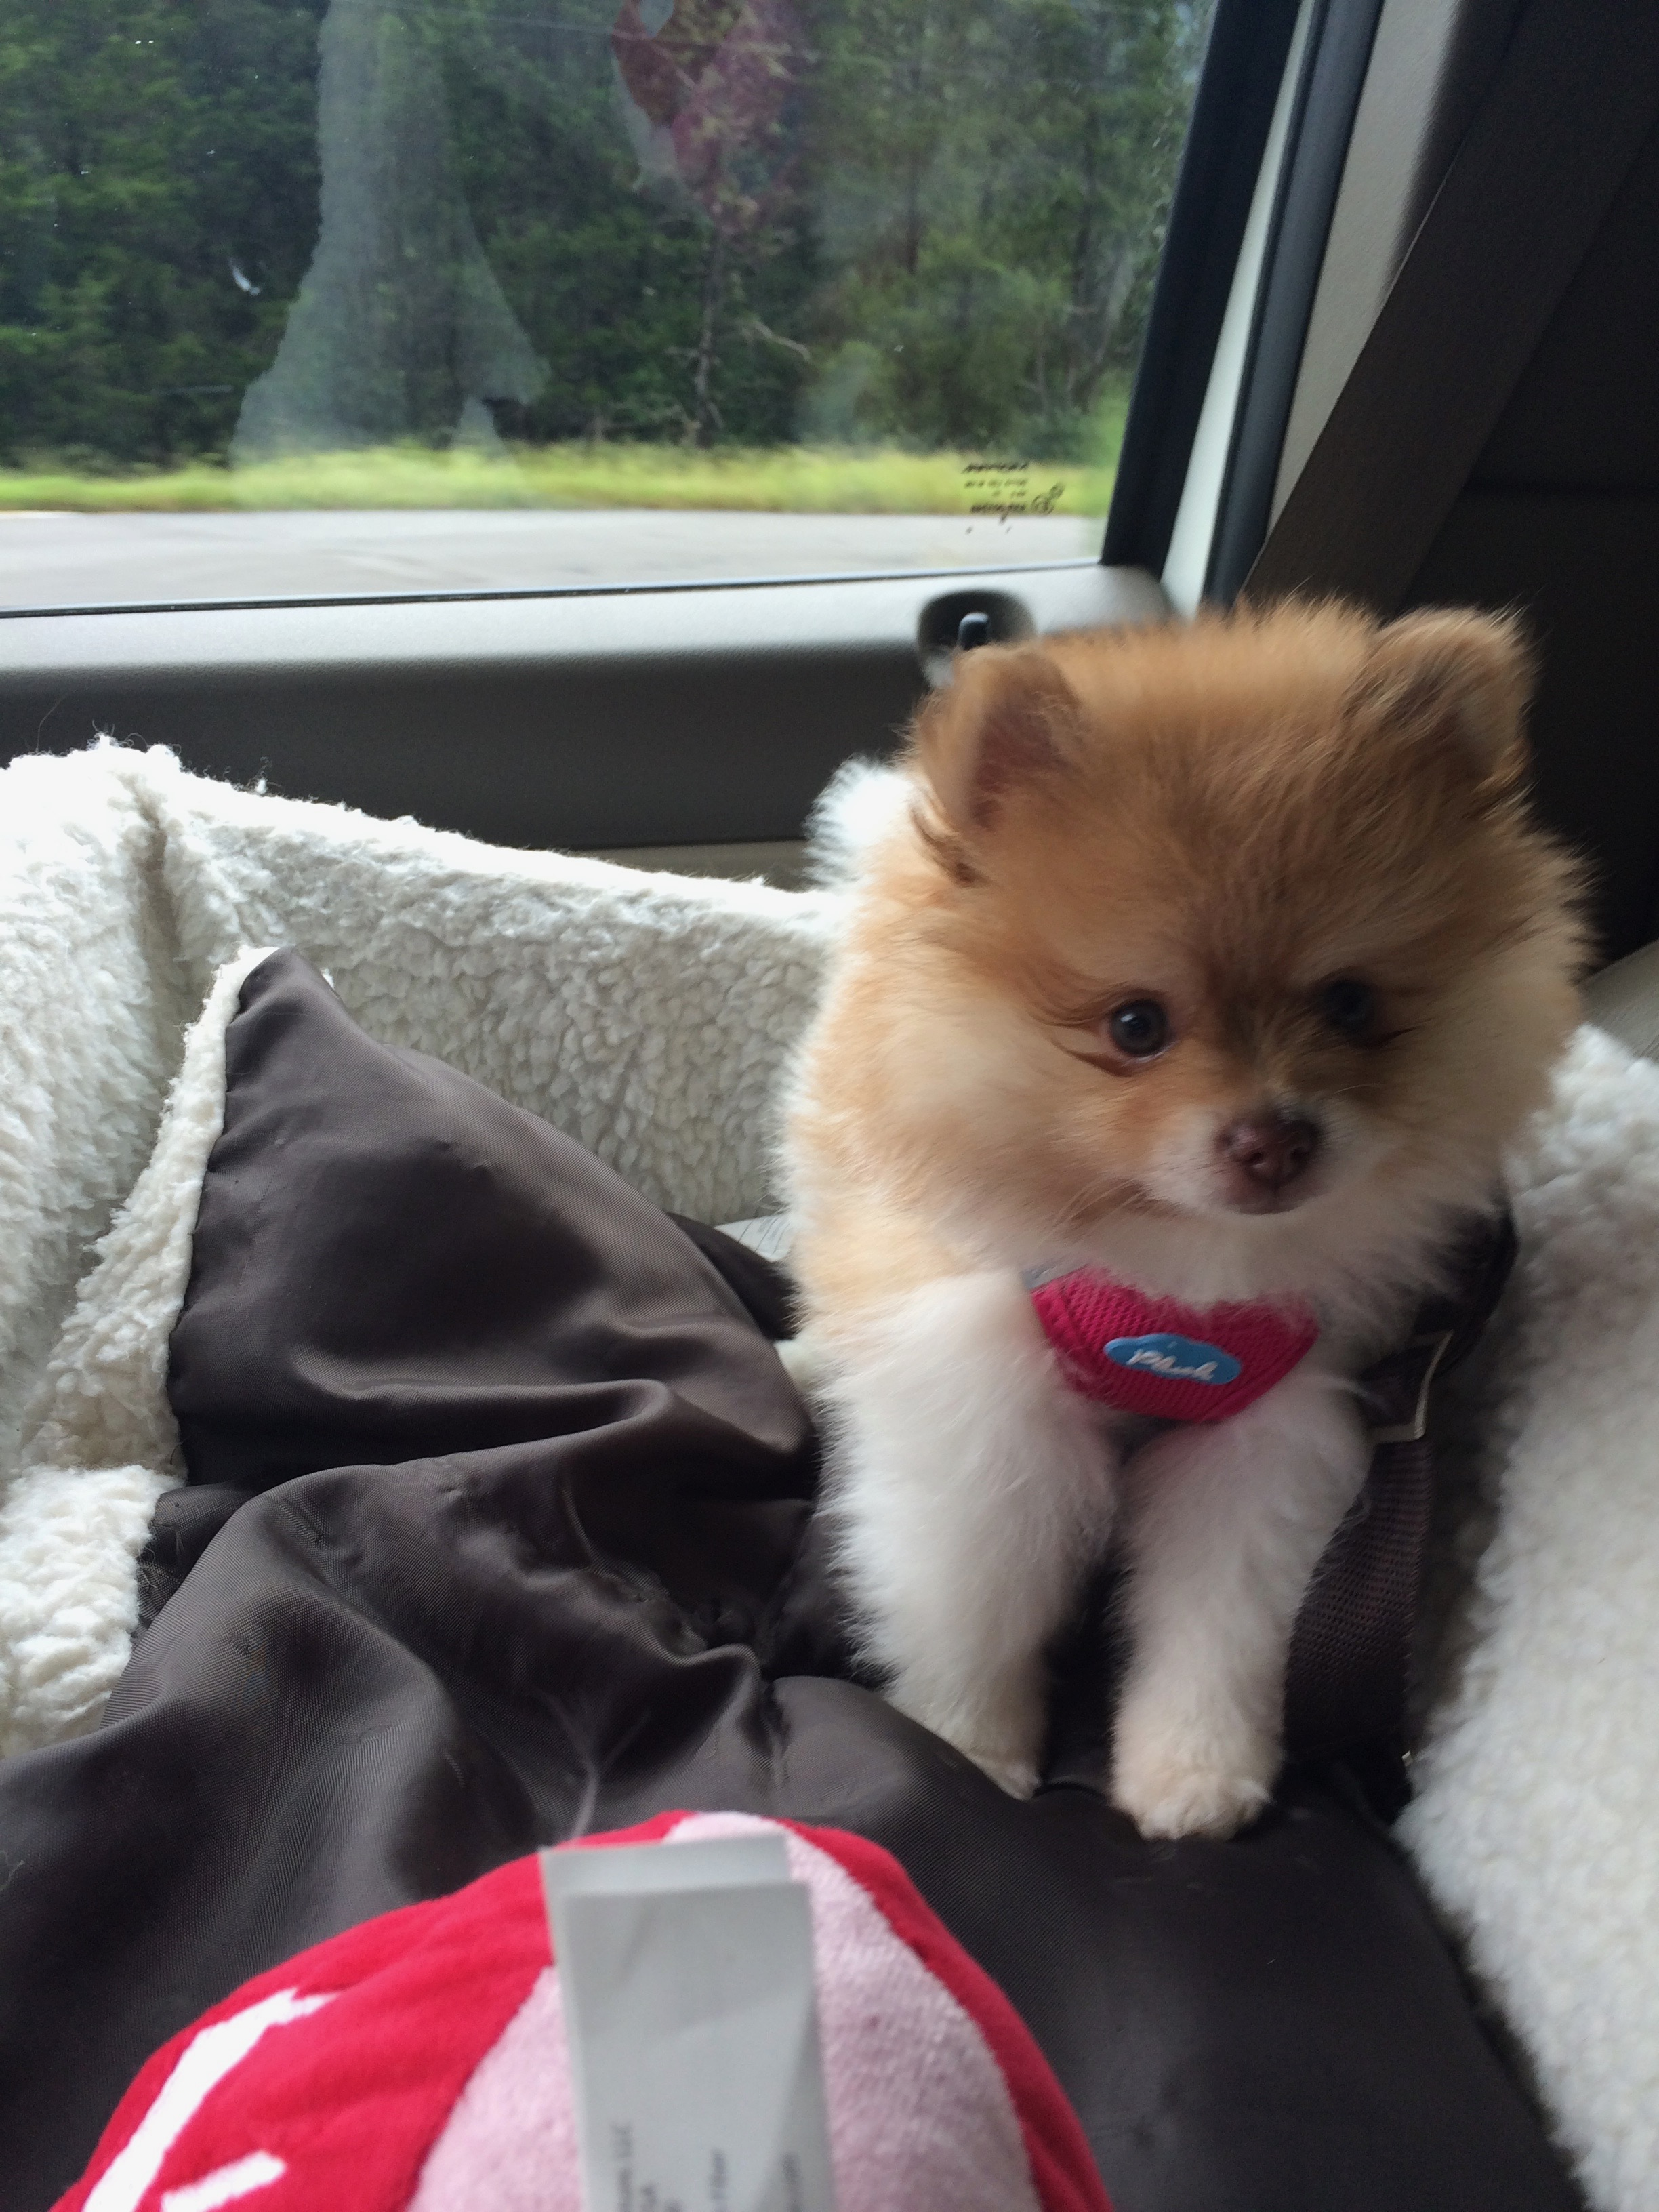 meet-our-newest-member-of-the-family-learn-how-to-handle-a-pomeranian-puppy